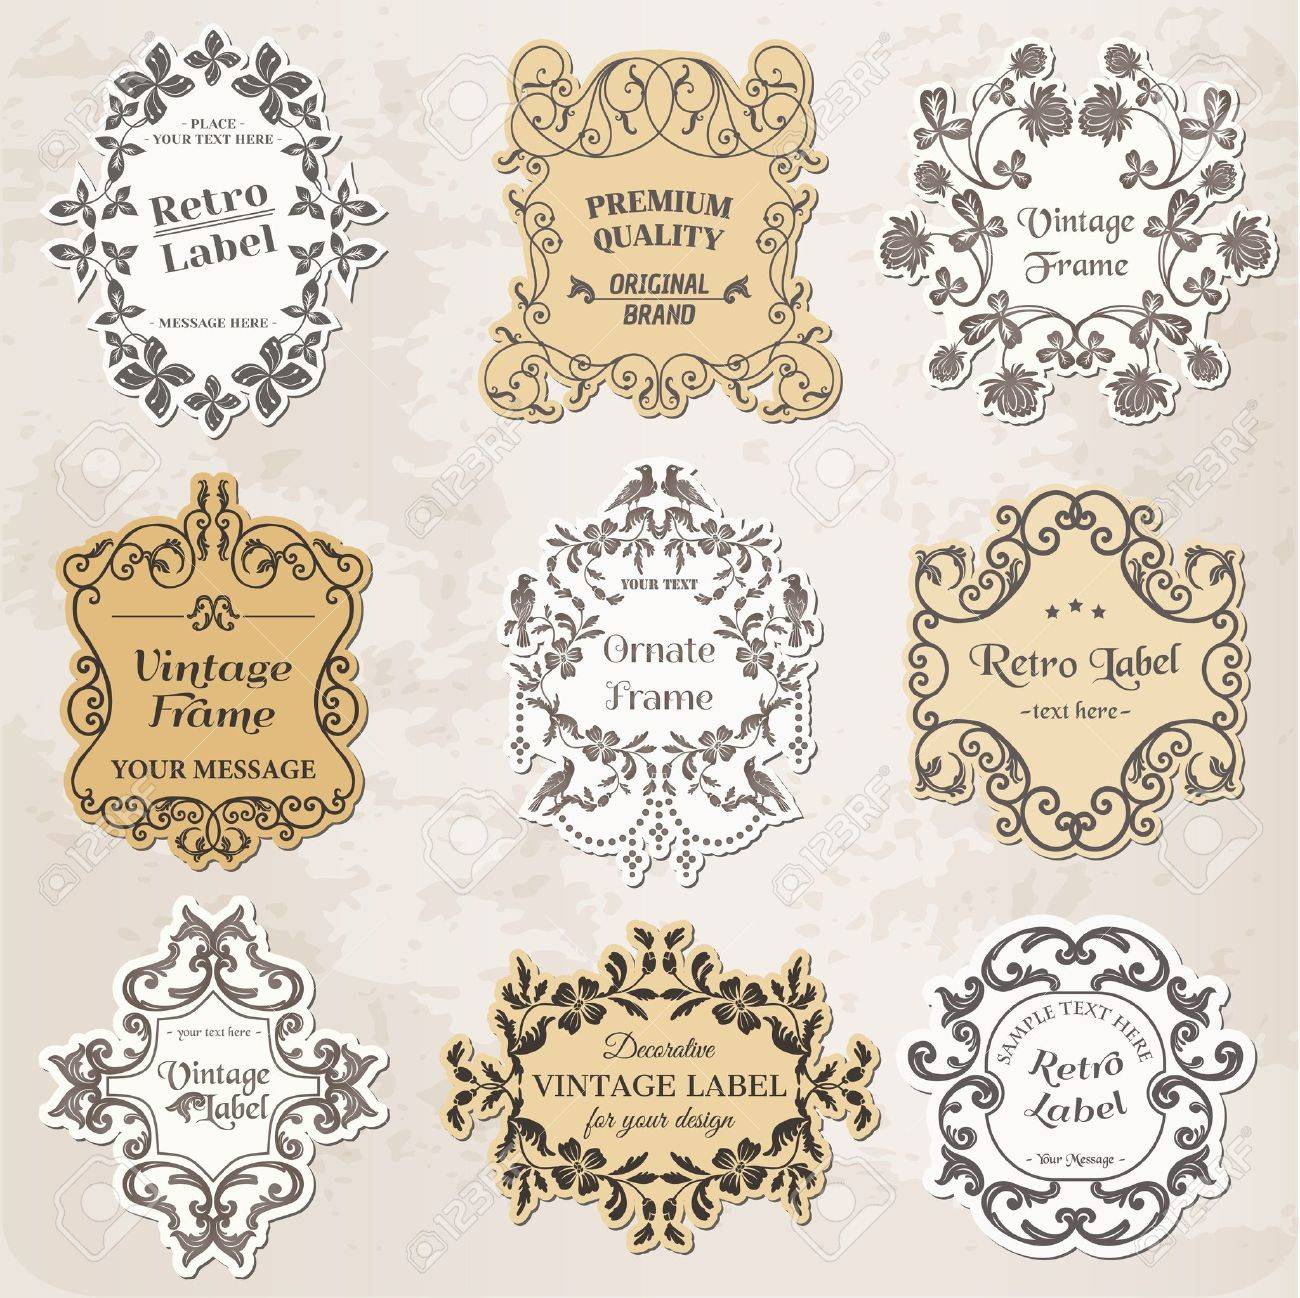 Vintage Frames, Calligraphic Design Elements and Page Decoration Stock Vector - 14269221